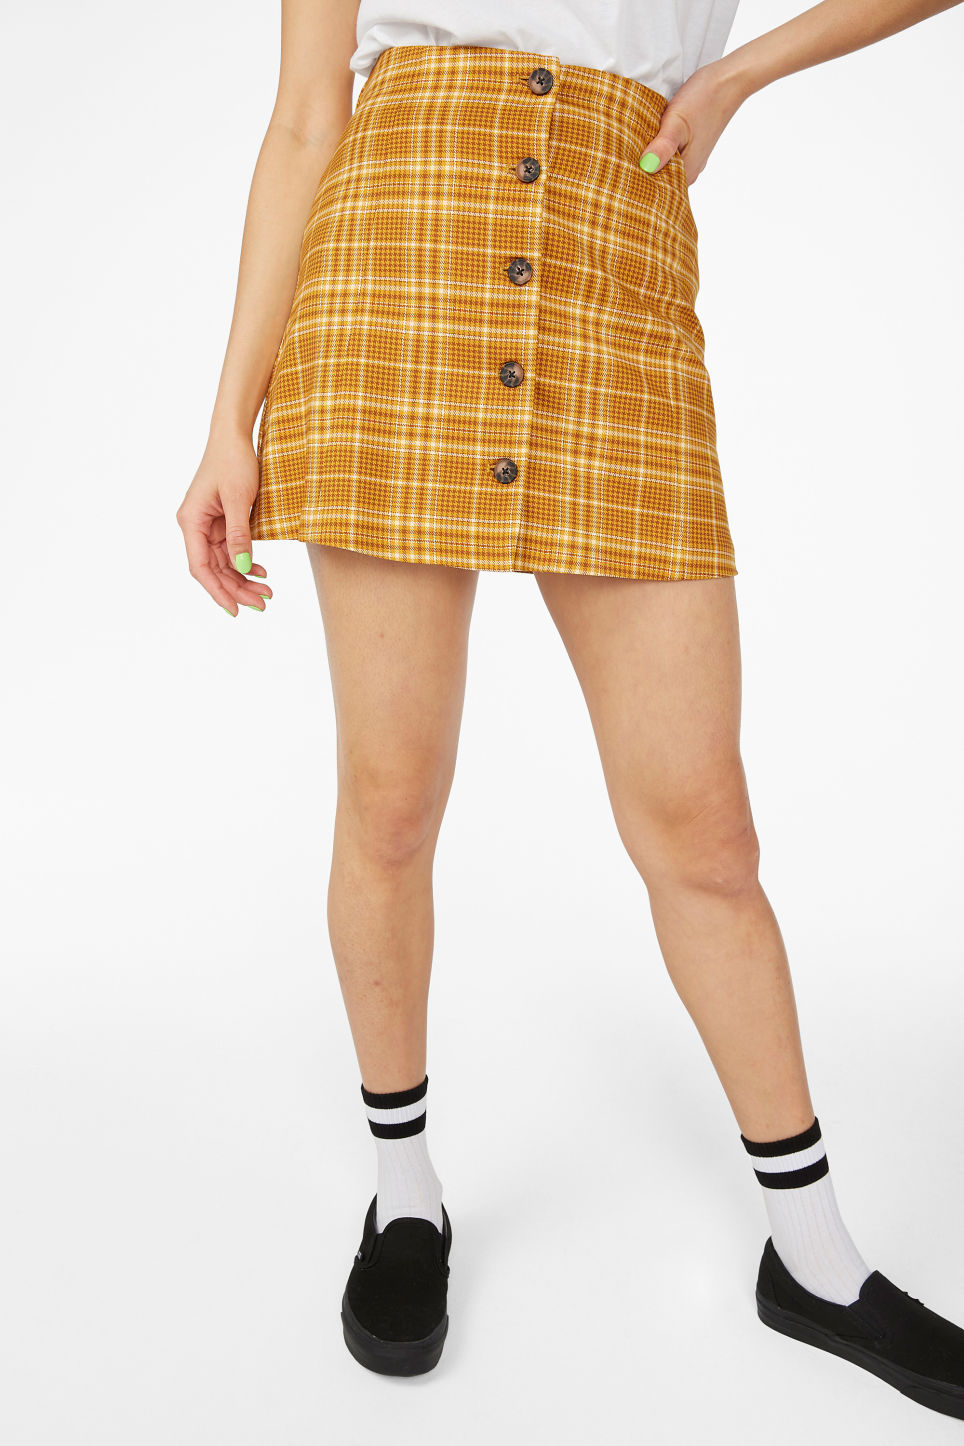 Model side image of Monki a-line mini skirt  in yellow